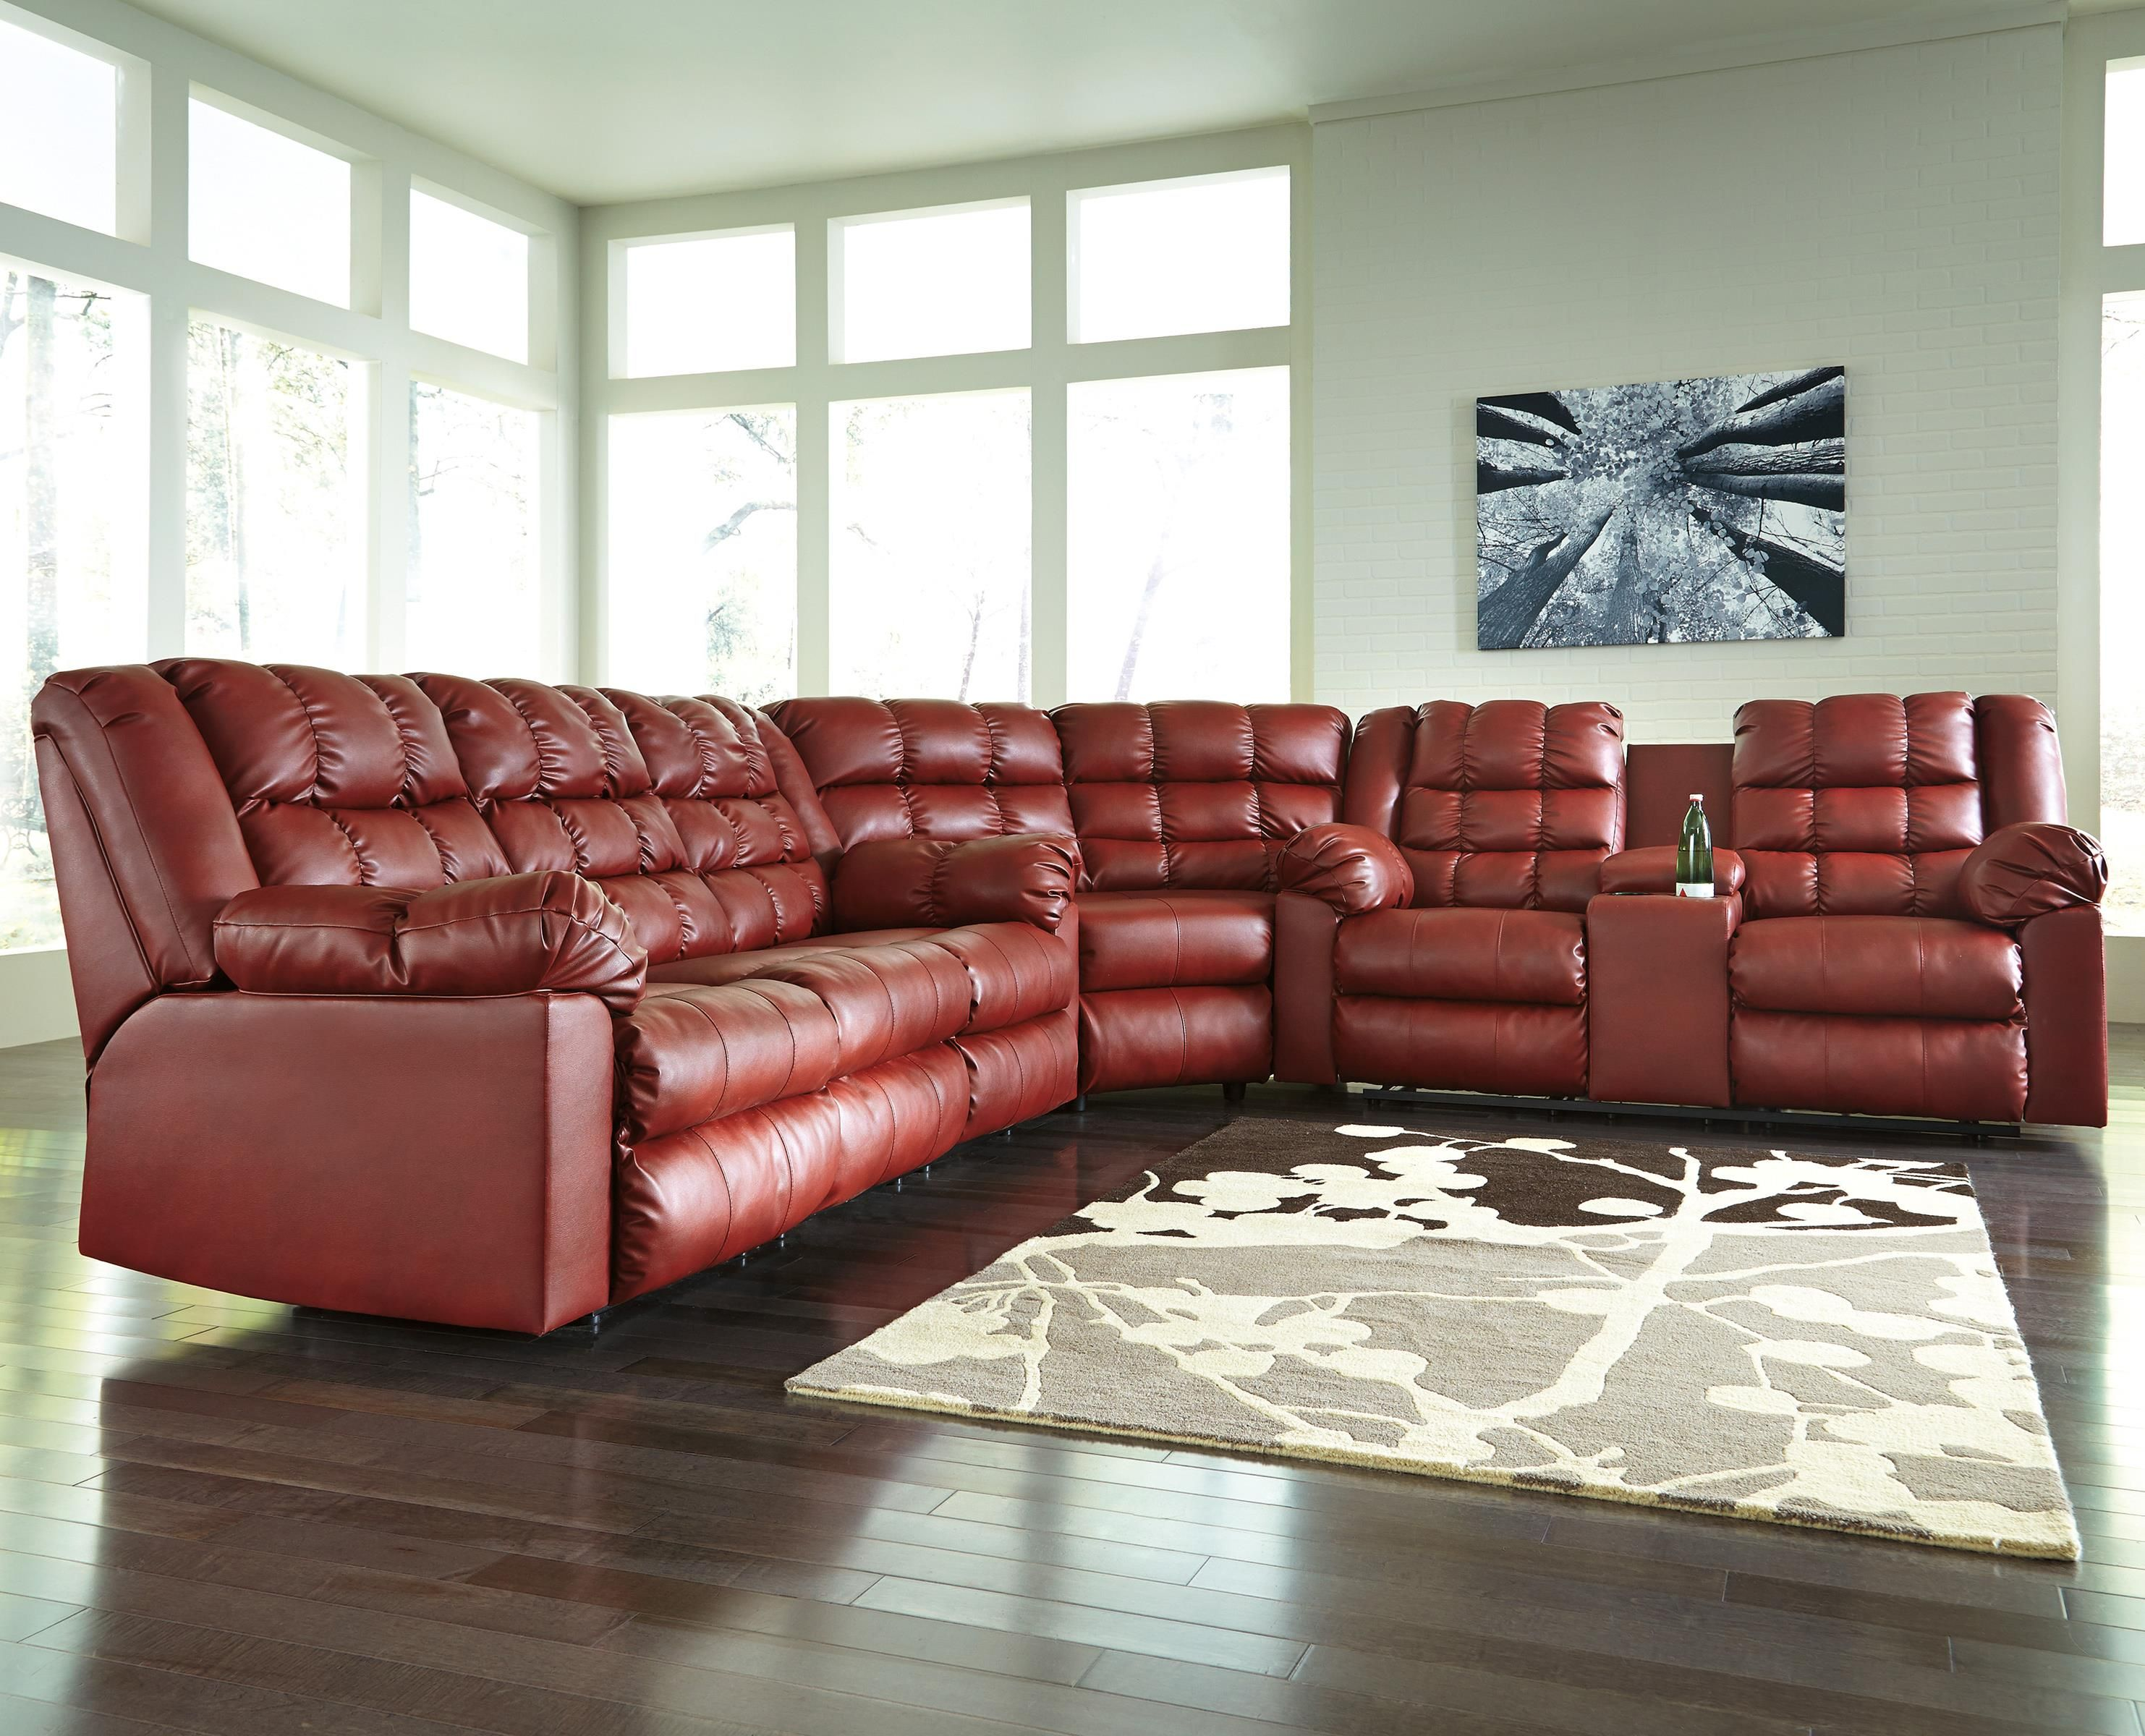 Ashley Red Leather Sofa Furnishing Fabrics India Brolayne Durablend 3 Piece Reclining Sectional By